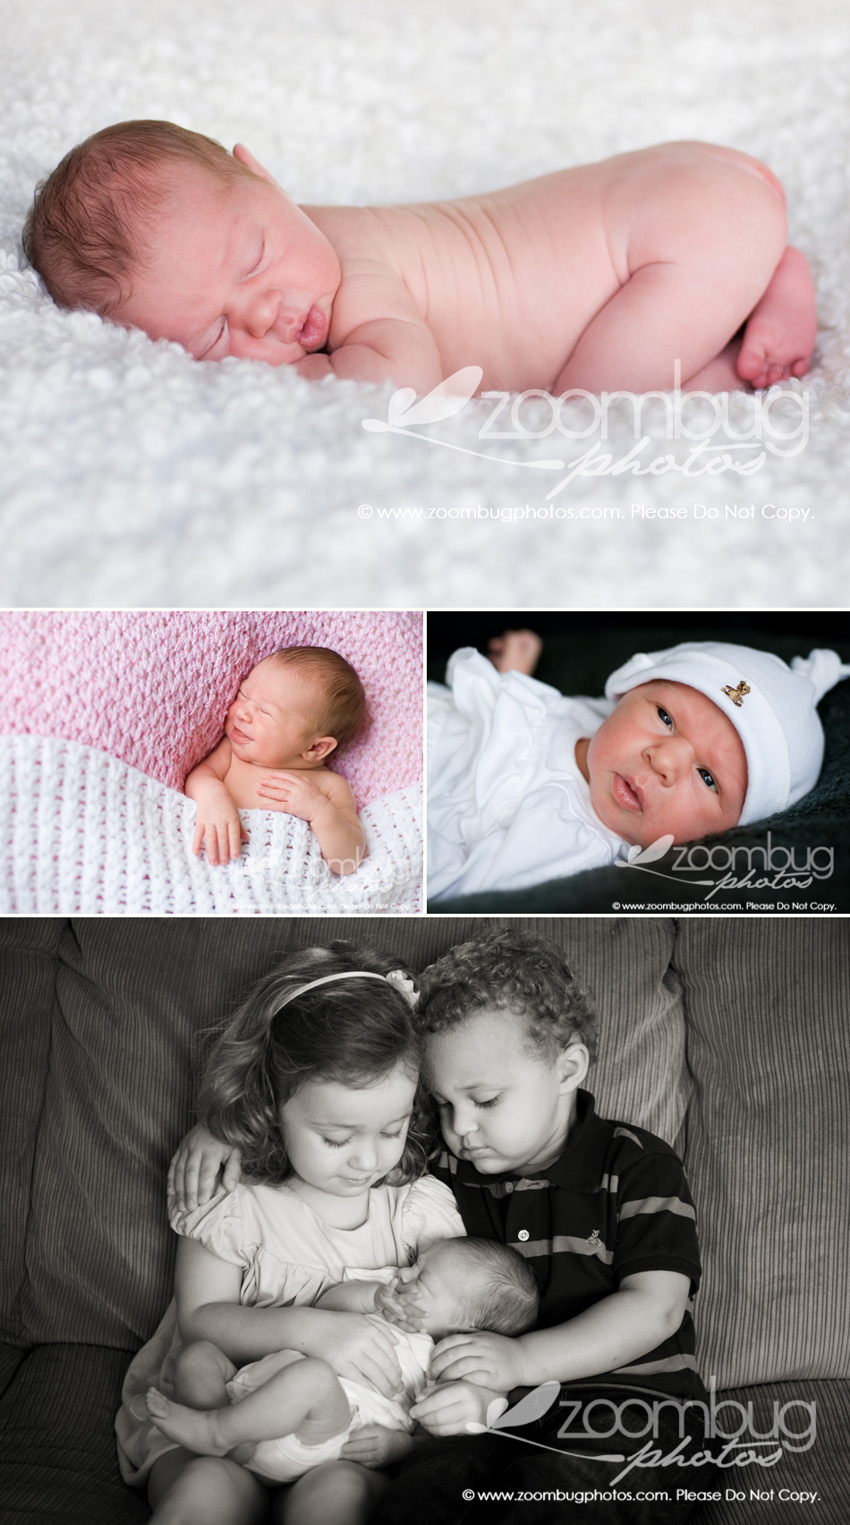 Newborn Pictures with Siblings http://www.zoombugphotos.com/2011/6-days-old-newborn-photography-lexington-ky/